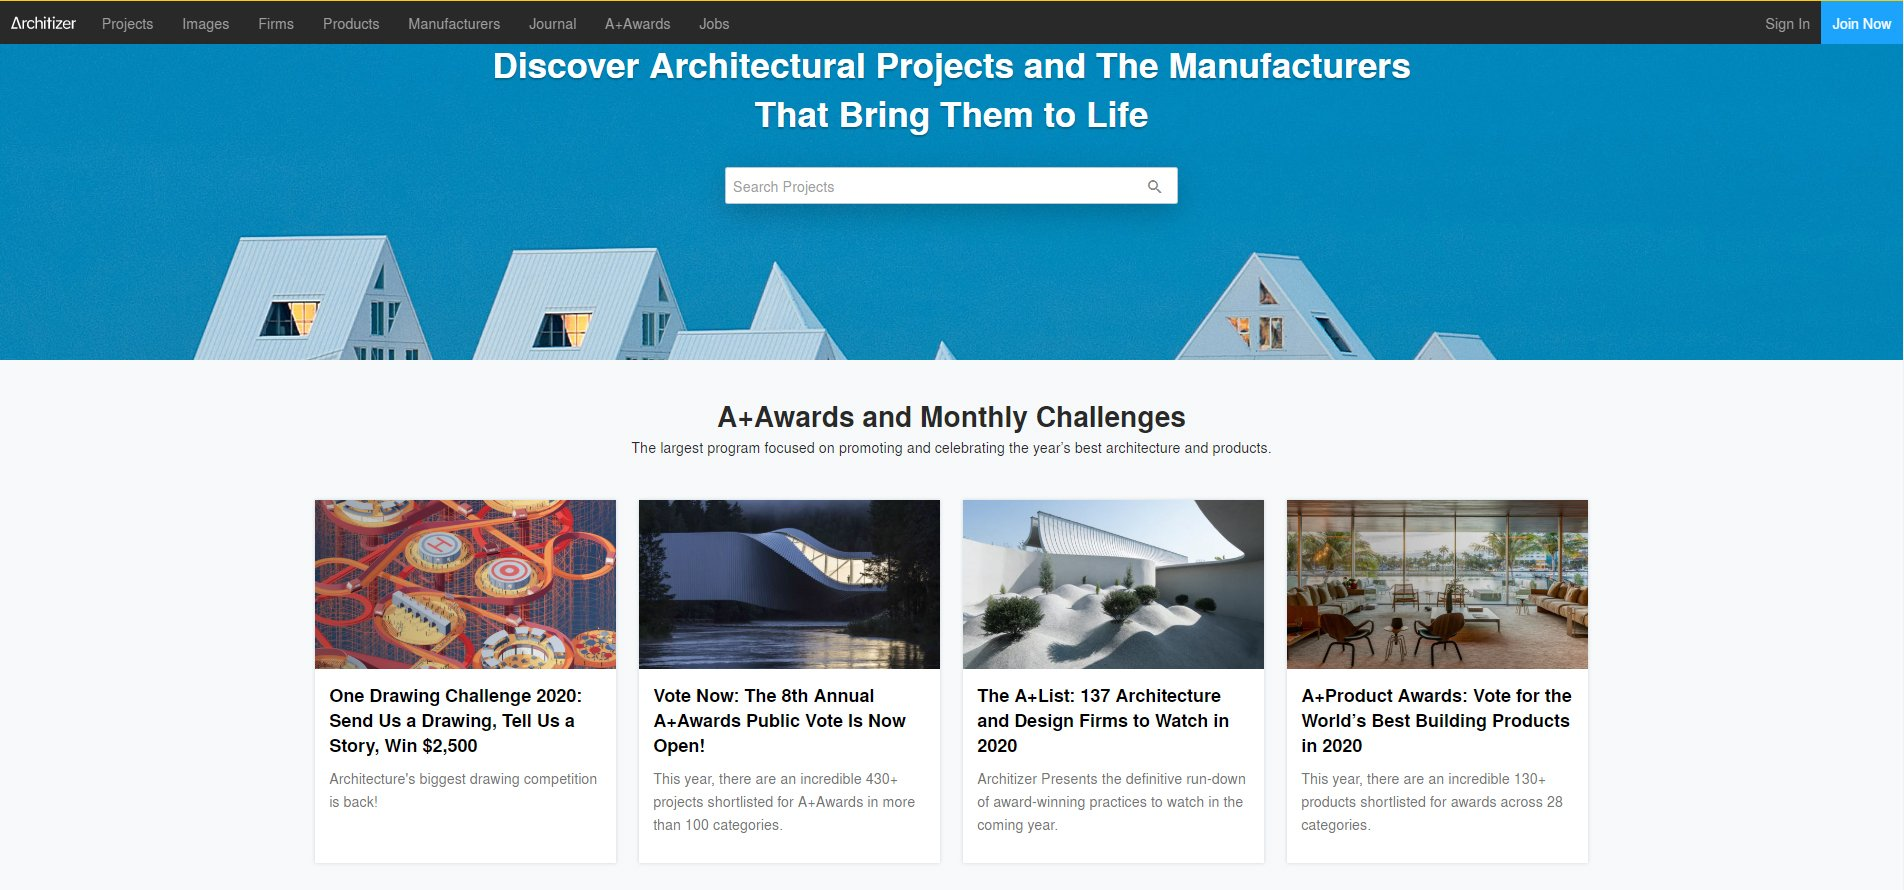 Finding Inspiration for New Projects on Architizer